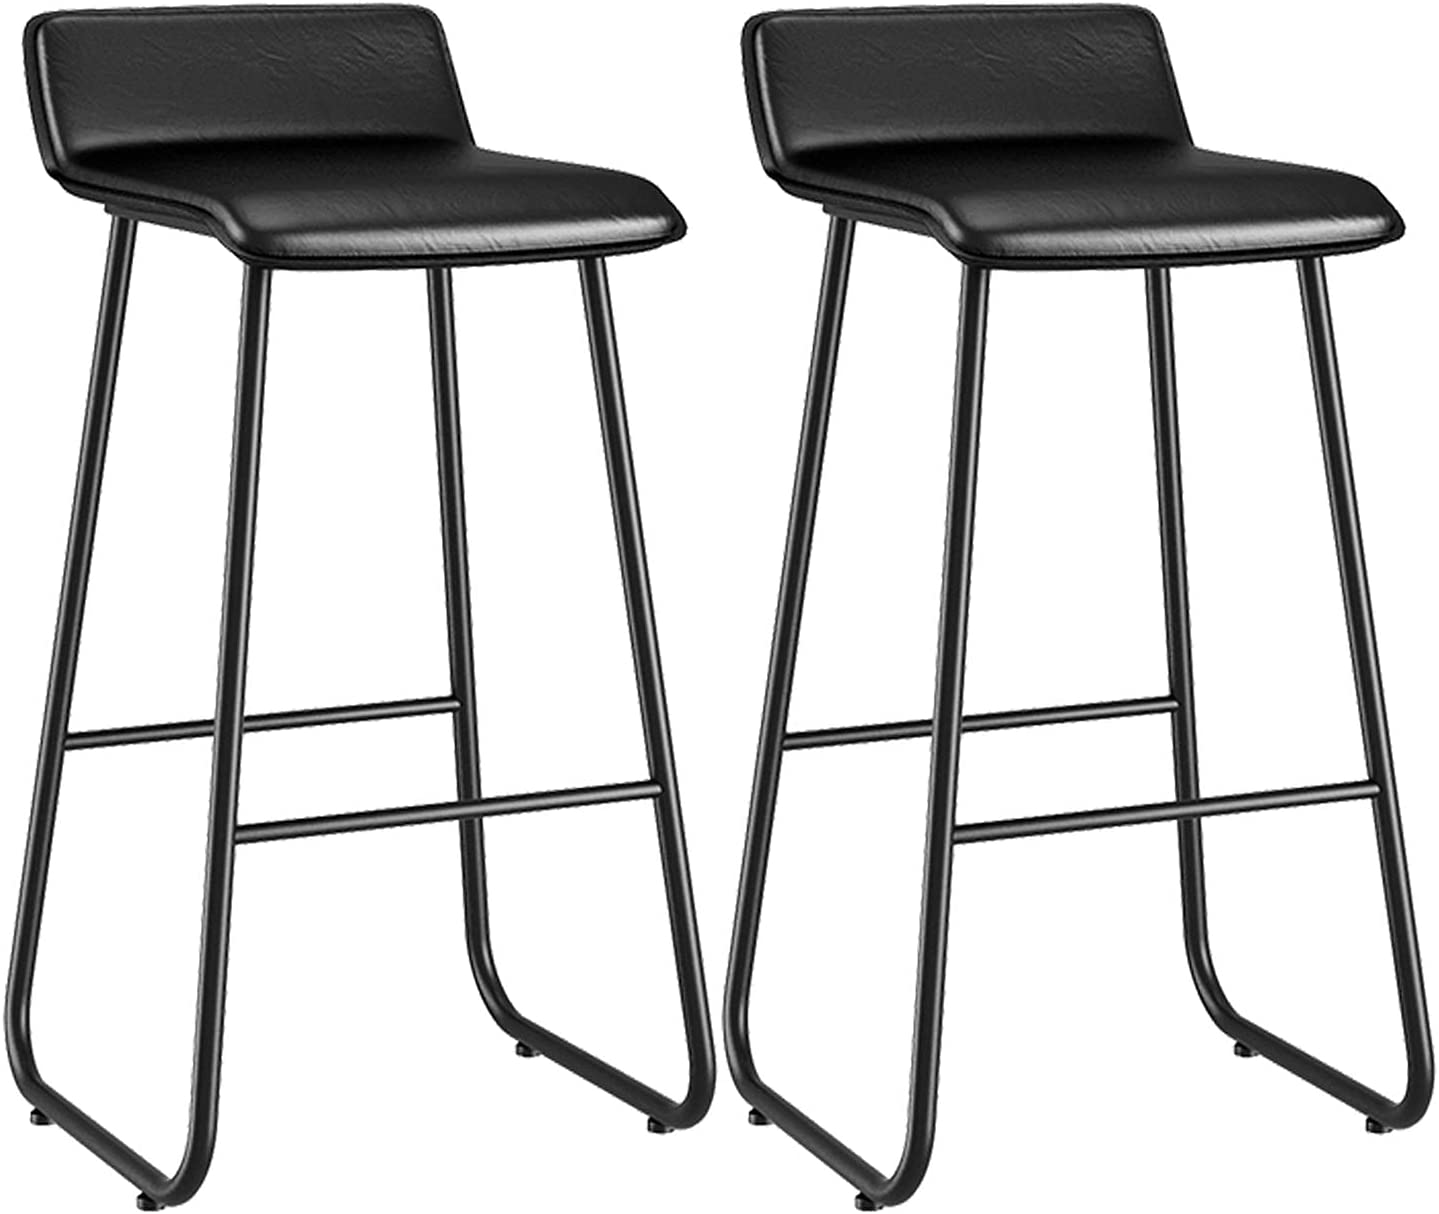 LIPINCMX 25.6in 65cm Counter Height Sales of SALE items from new Tulsa Mall works PU Stools Modern Bar Leathe